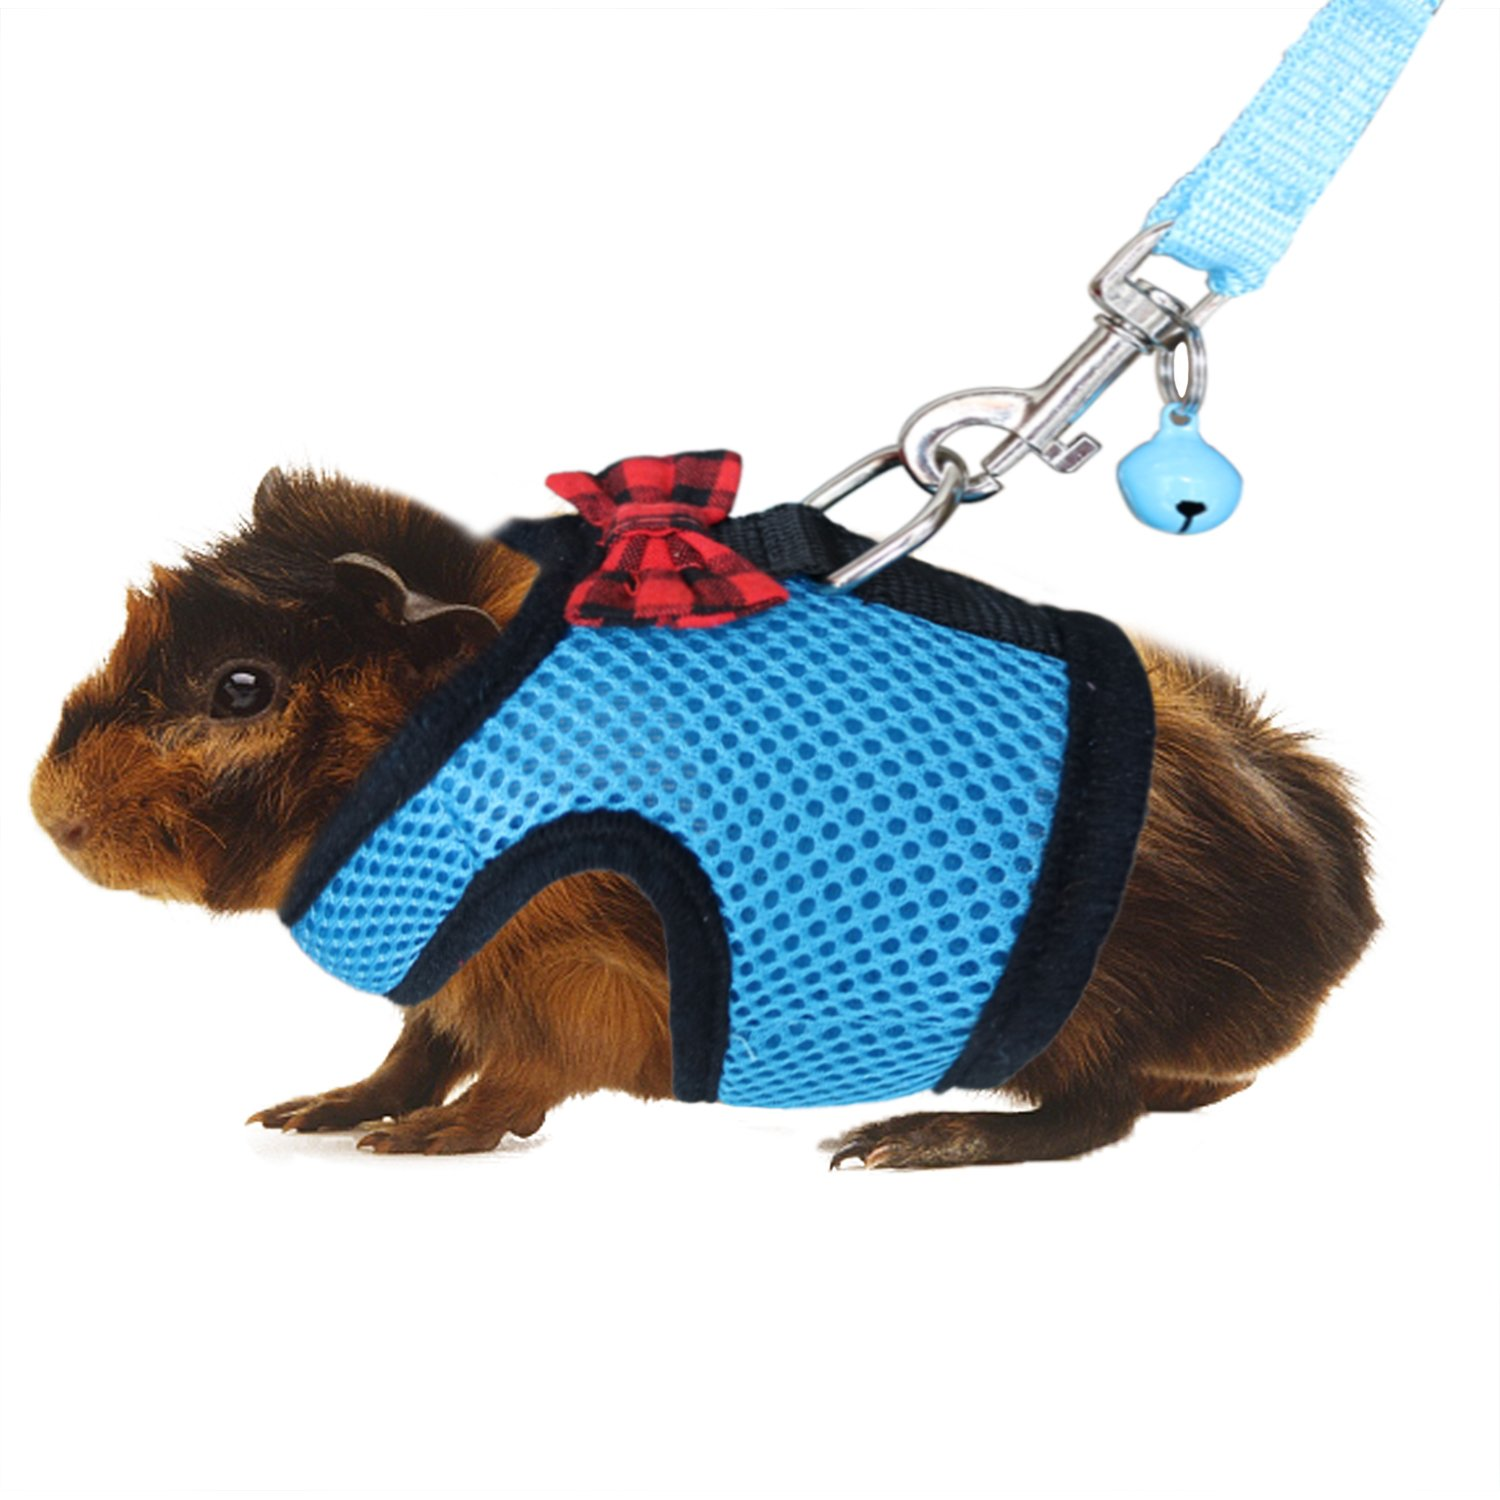 RYPET Guinea Pig Harness and Leash - Soft Mesh Small Pet Harness with Safe Bell, No Pull Comfort Padded Vest for Guinea Pig, Hamster, Rats and Similar Small Animals